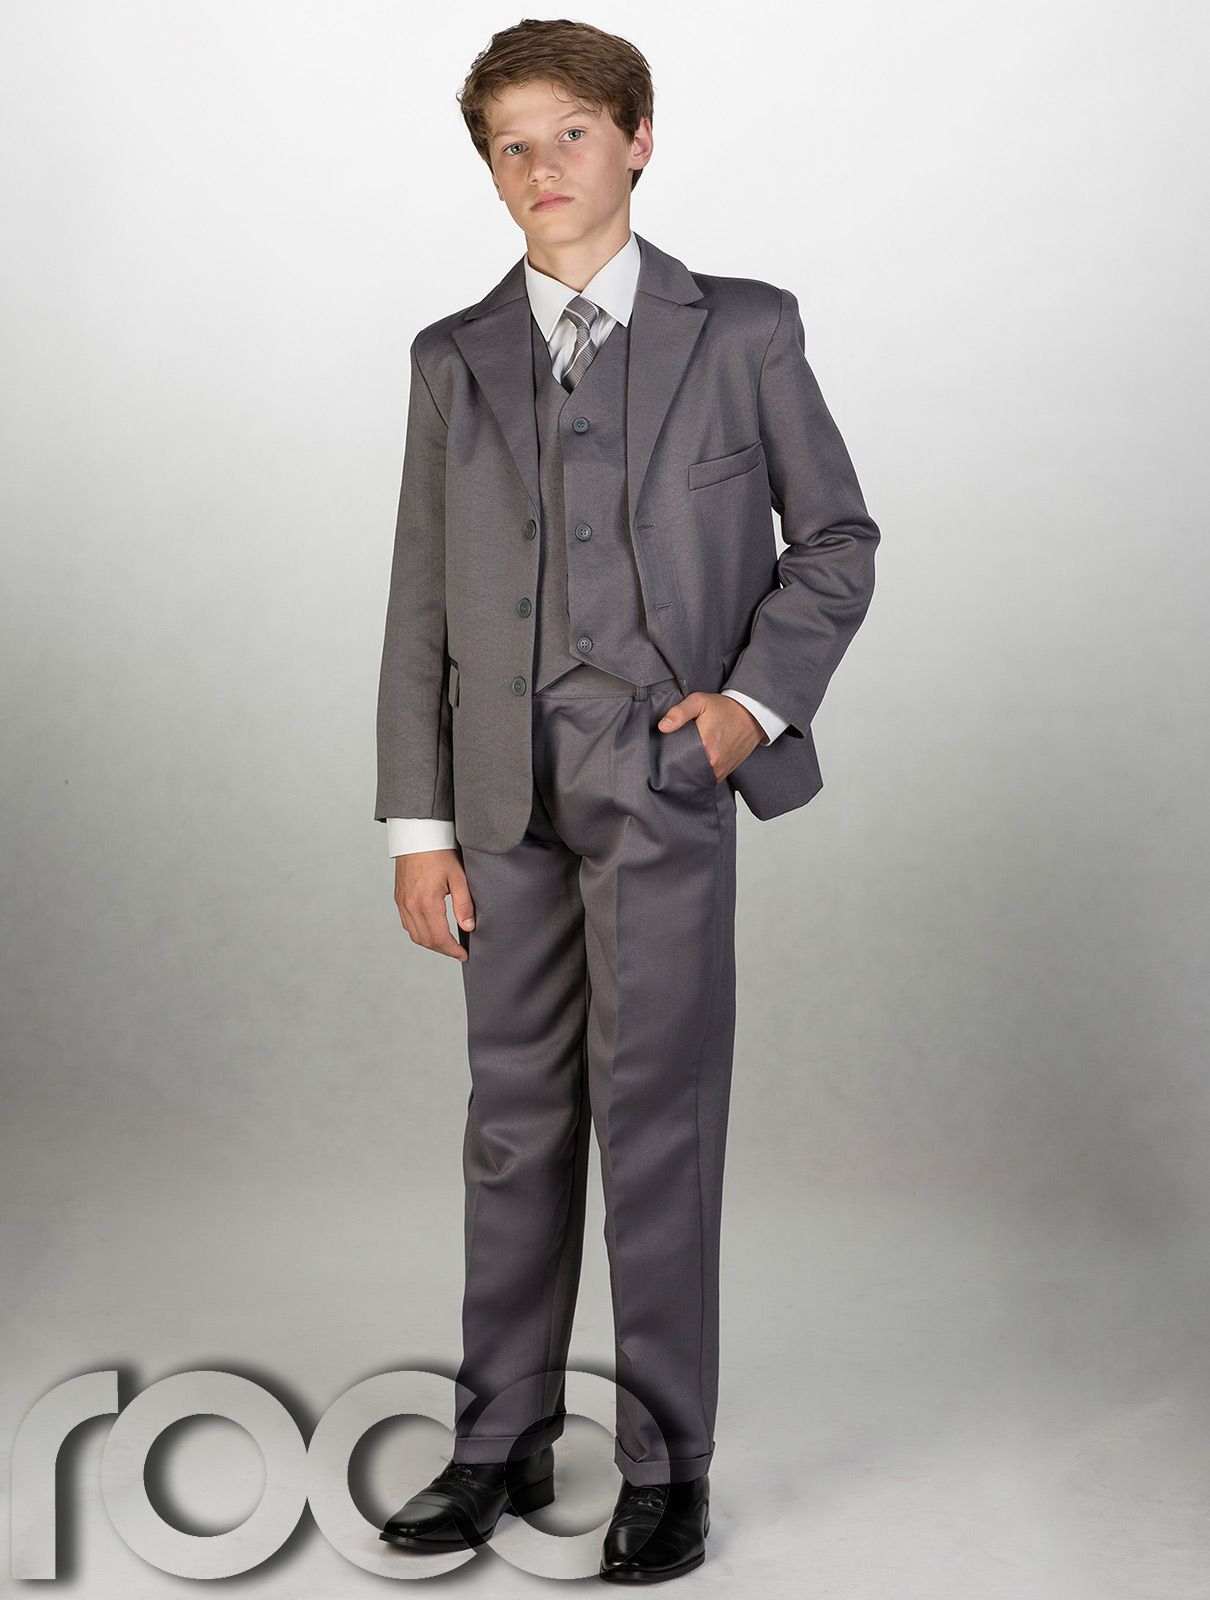 boys grey suit page boy outfits kids suits boys wedding